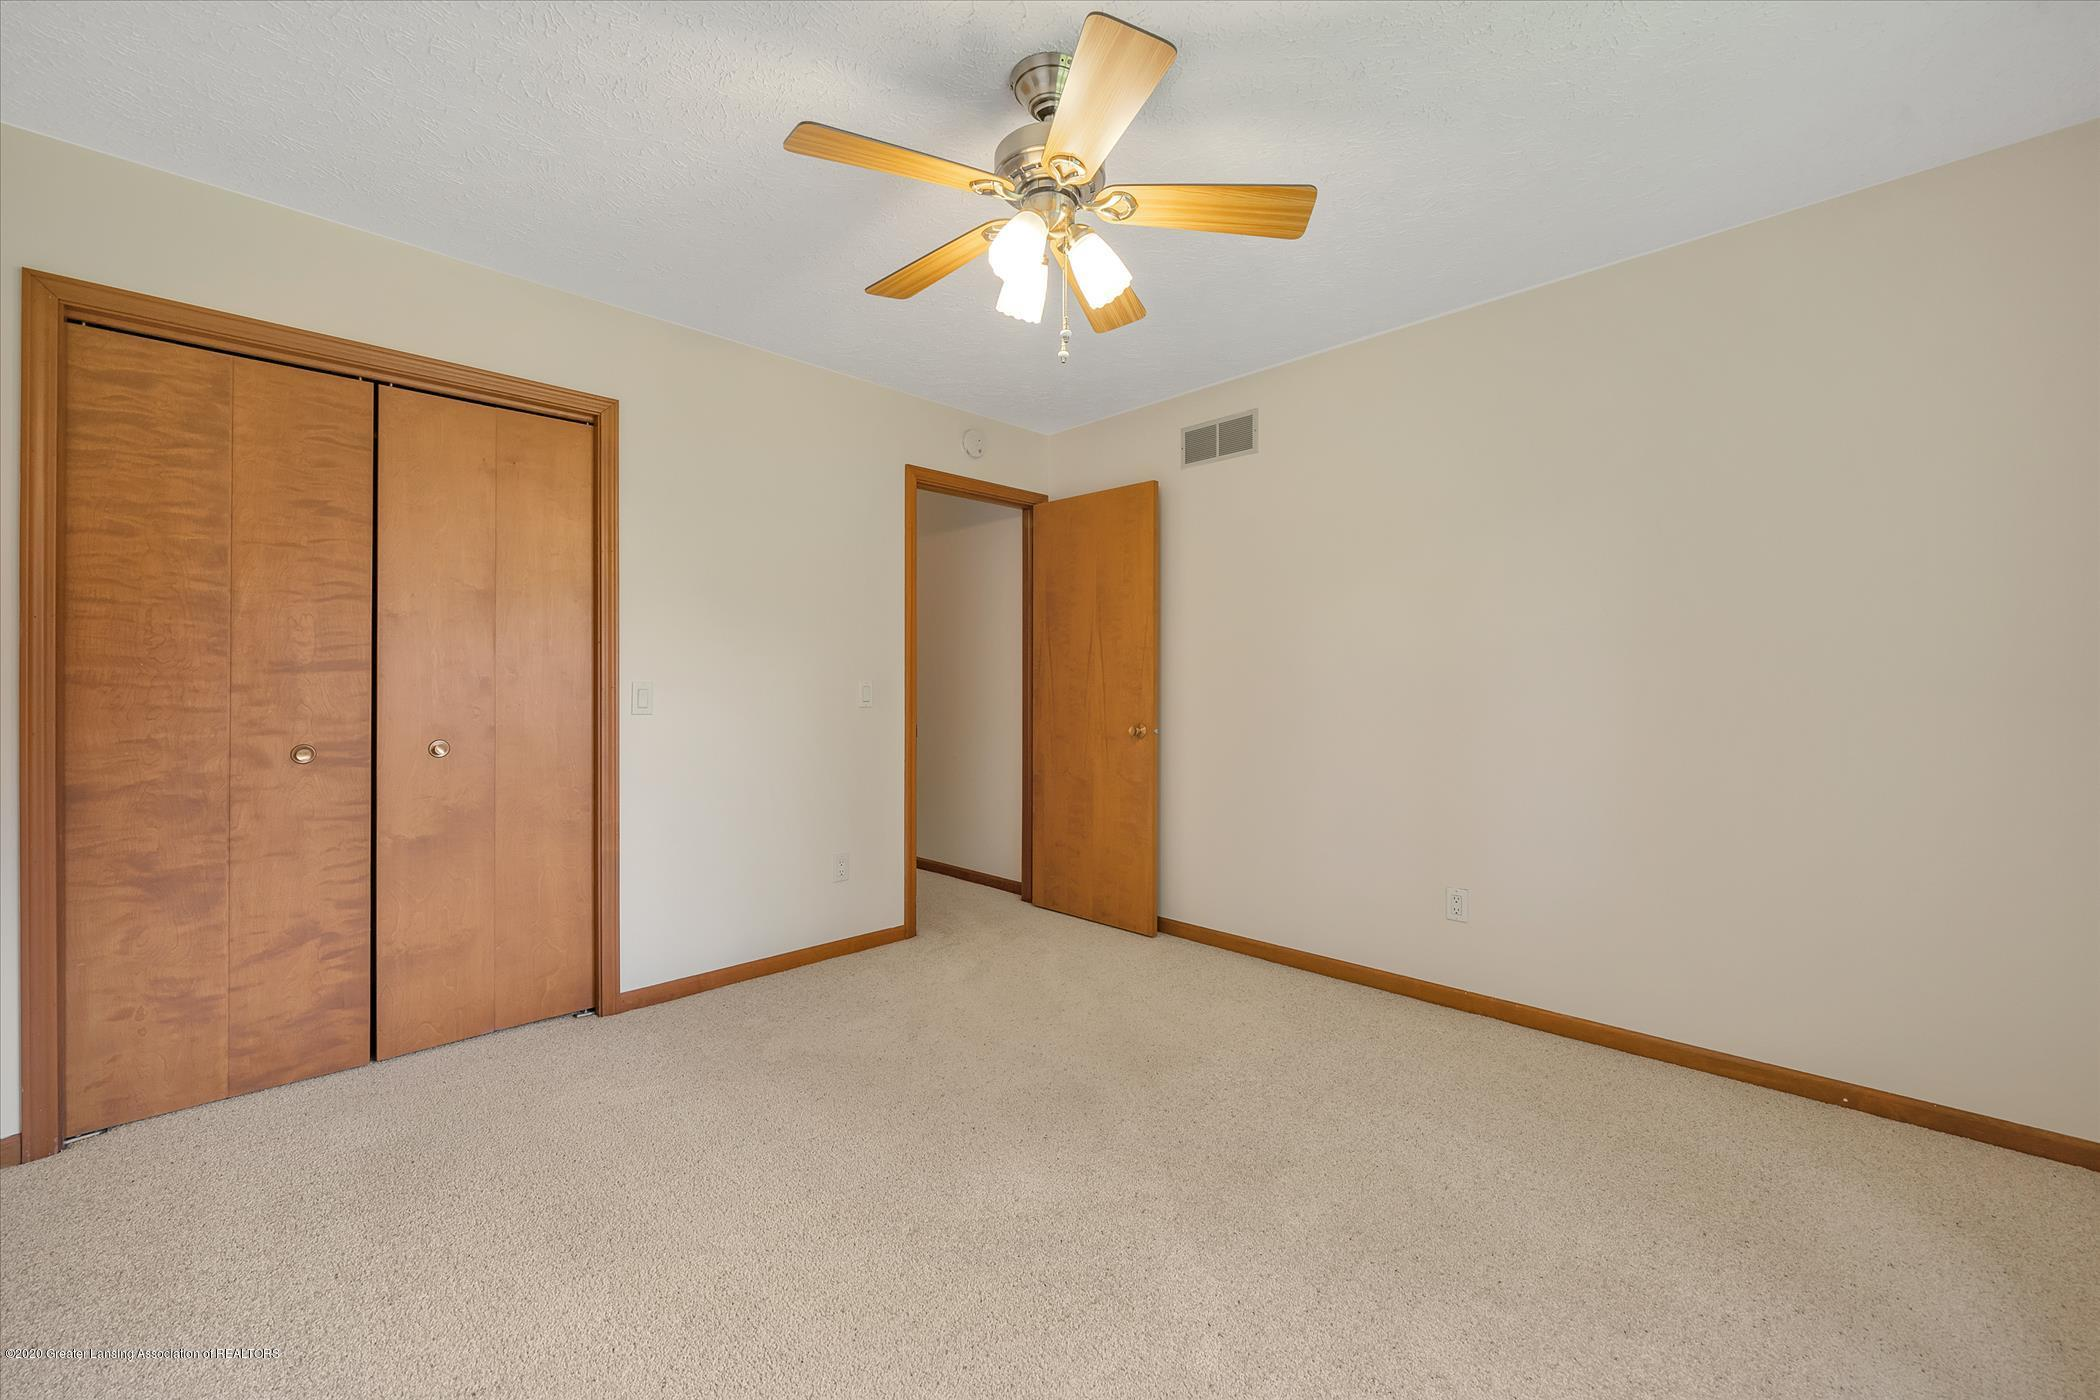 2605 Woodhill Dr - Bedroom 2 - 12